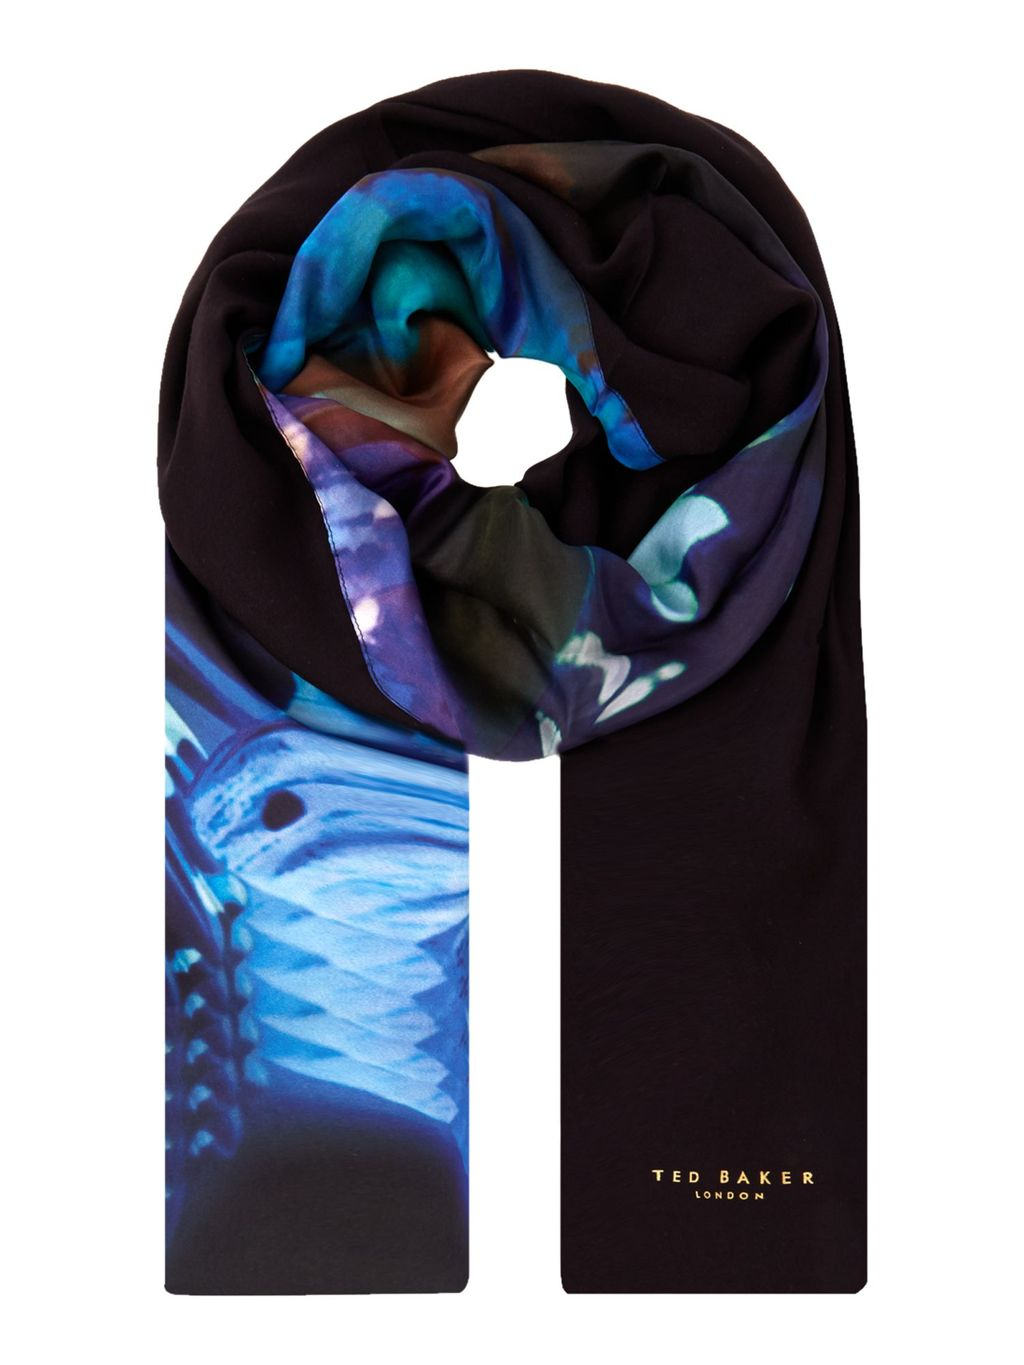 Milae Butterfly Collective Split Scarf, Black - predominant colour: black; occasions: casual; type of pattern: heavy; style: regular; size: standard; material: fabric; pattern: patterned/print; multicoloured: multicoloured; season: s/s 2016; wardrobe: highlight